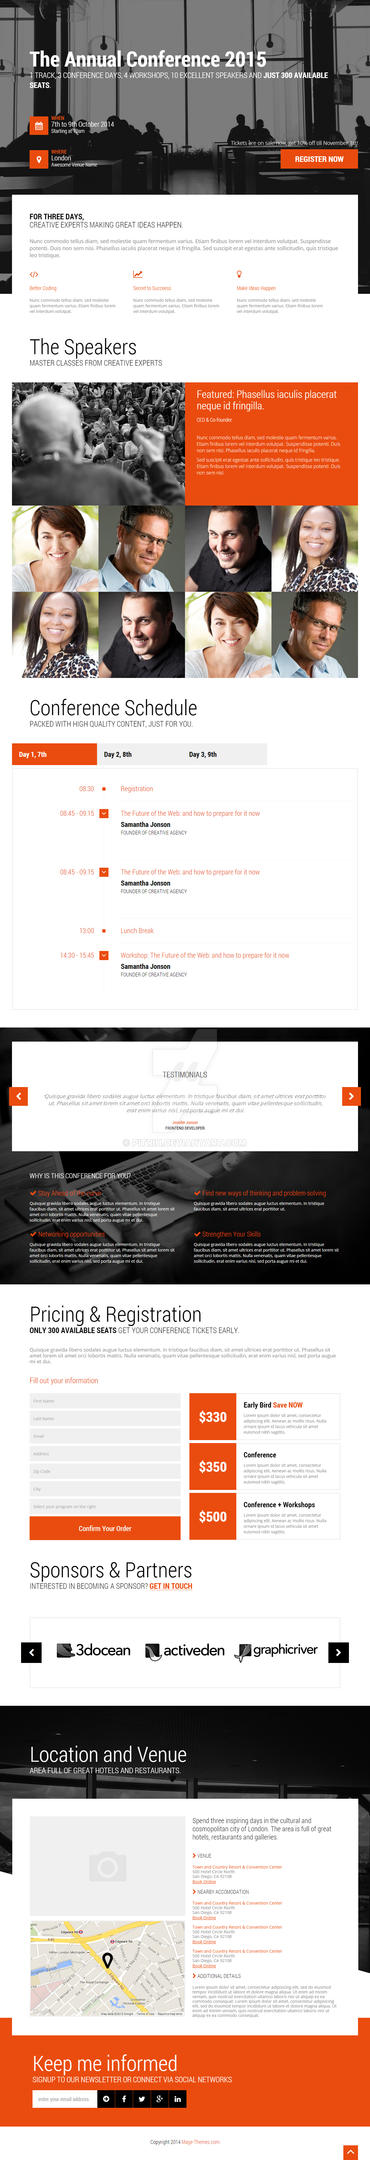 Conference and event web design by pitrih